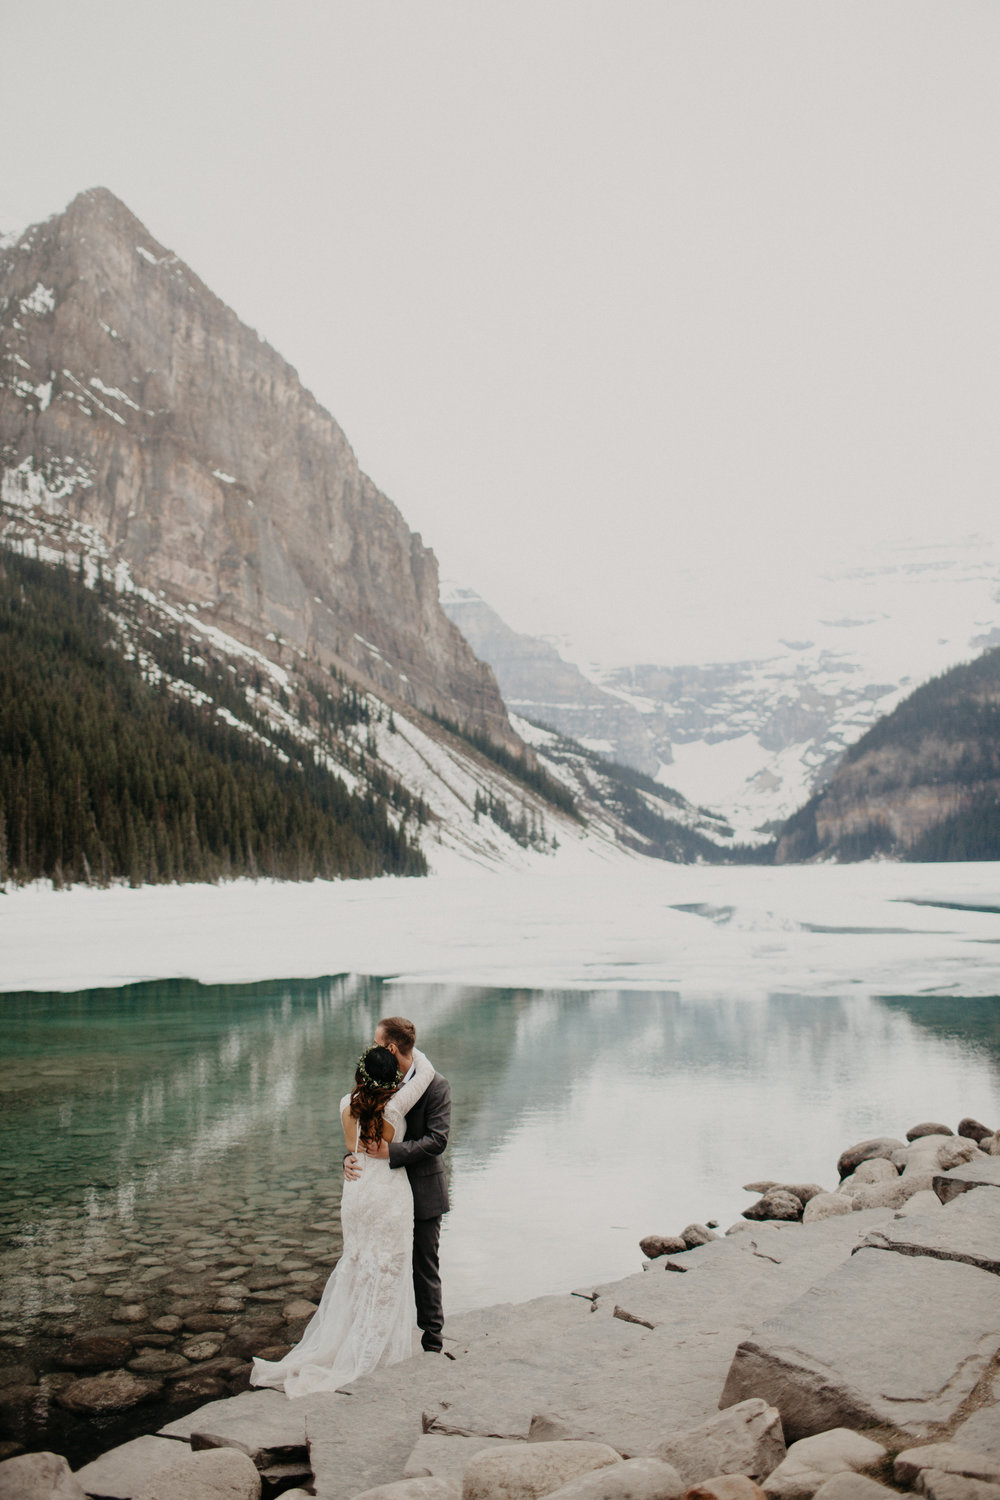 Lake Louise Elopement | Elope in Banff | Banff Adventure Elopement Photographer Kandice Breinholt | Willow Flower Co Bouquet and Flower Crown